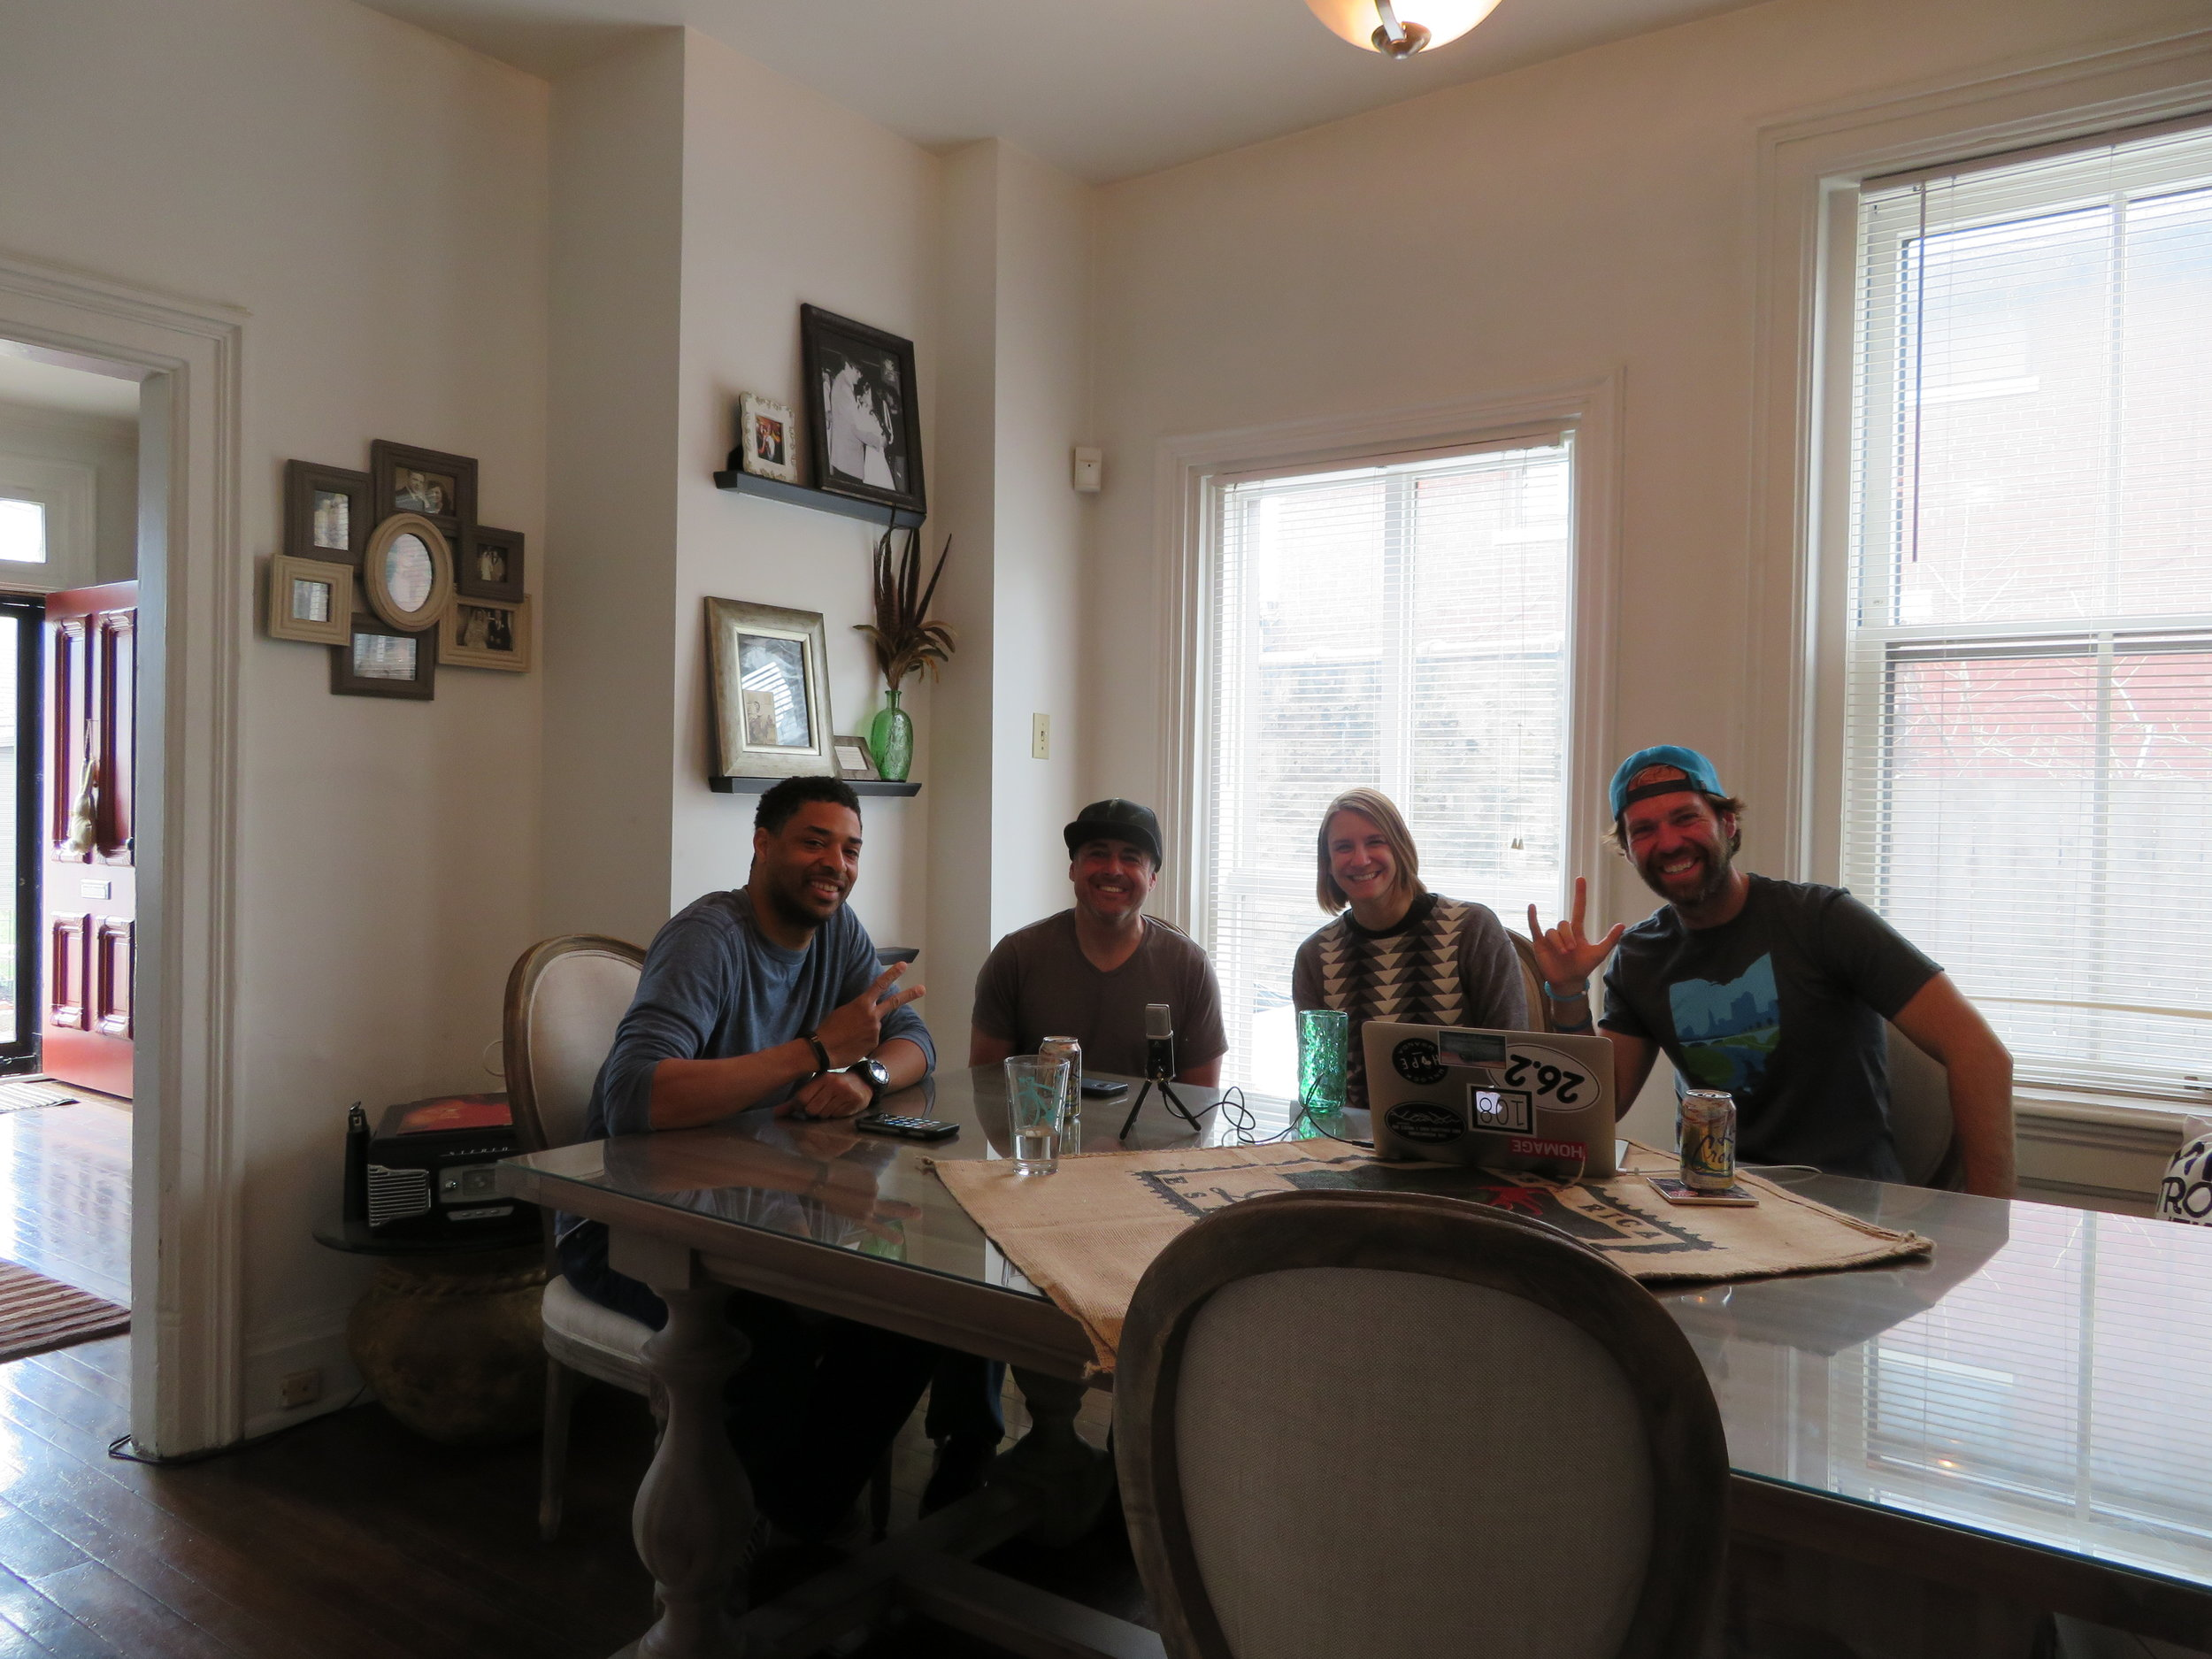 From left to right: Michael B from HERO USA, Dom from HERO USA, Amy K, and Mike R